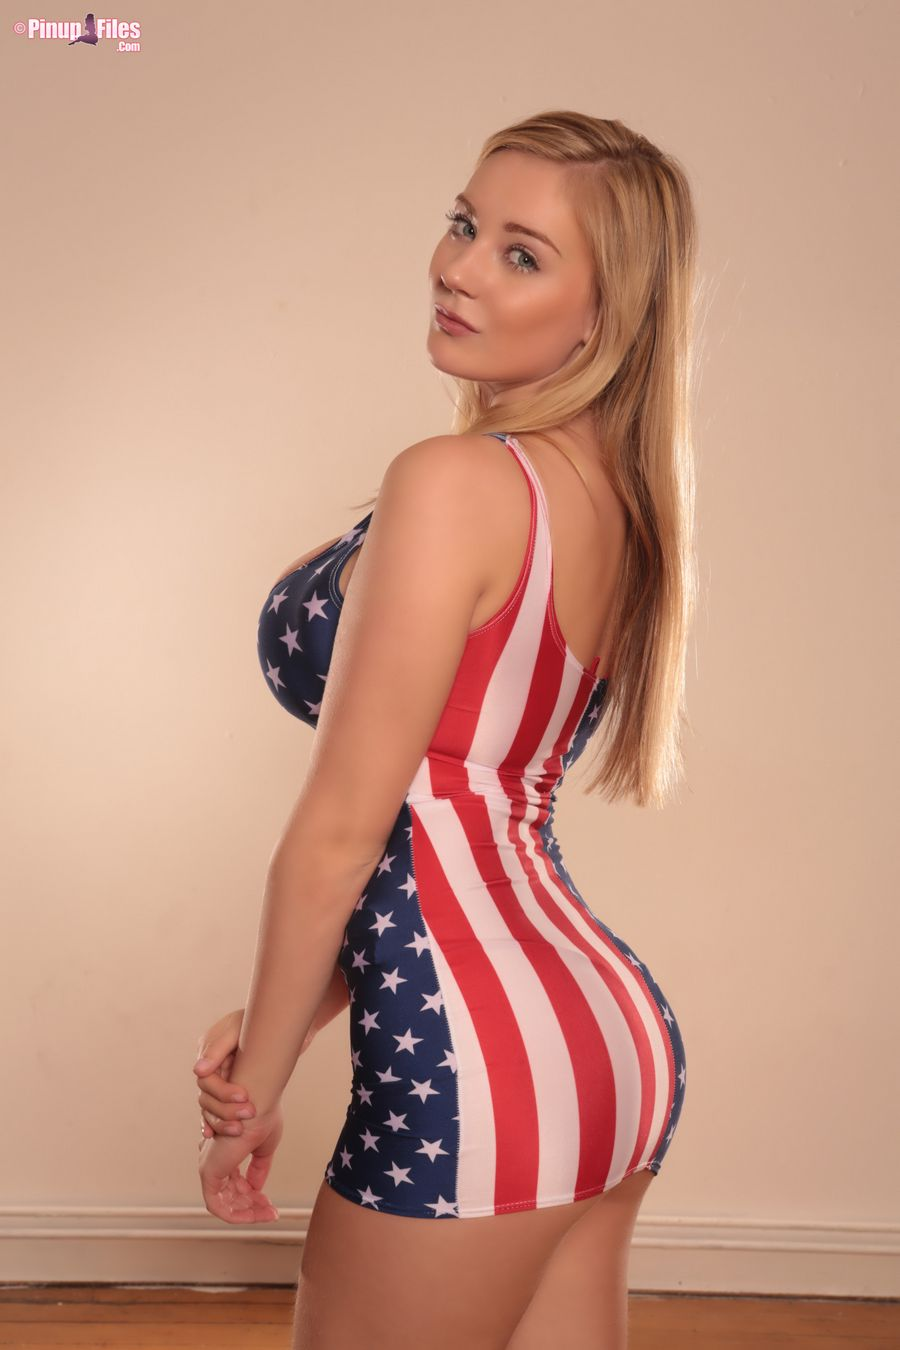 beth lily and amanda love celebrate usa independence day – boobsrealm